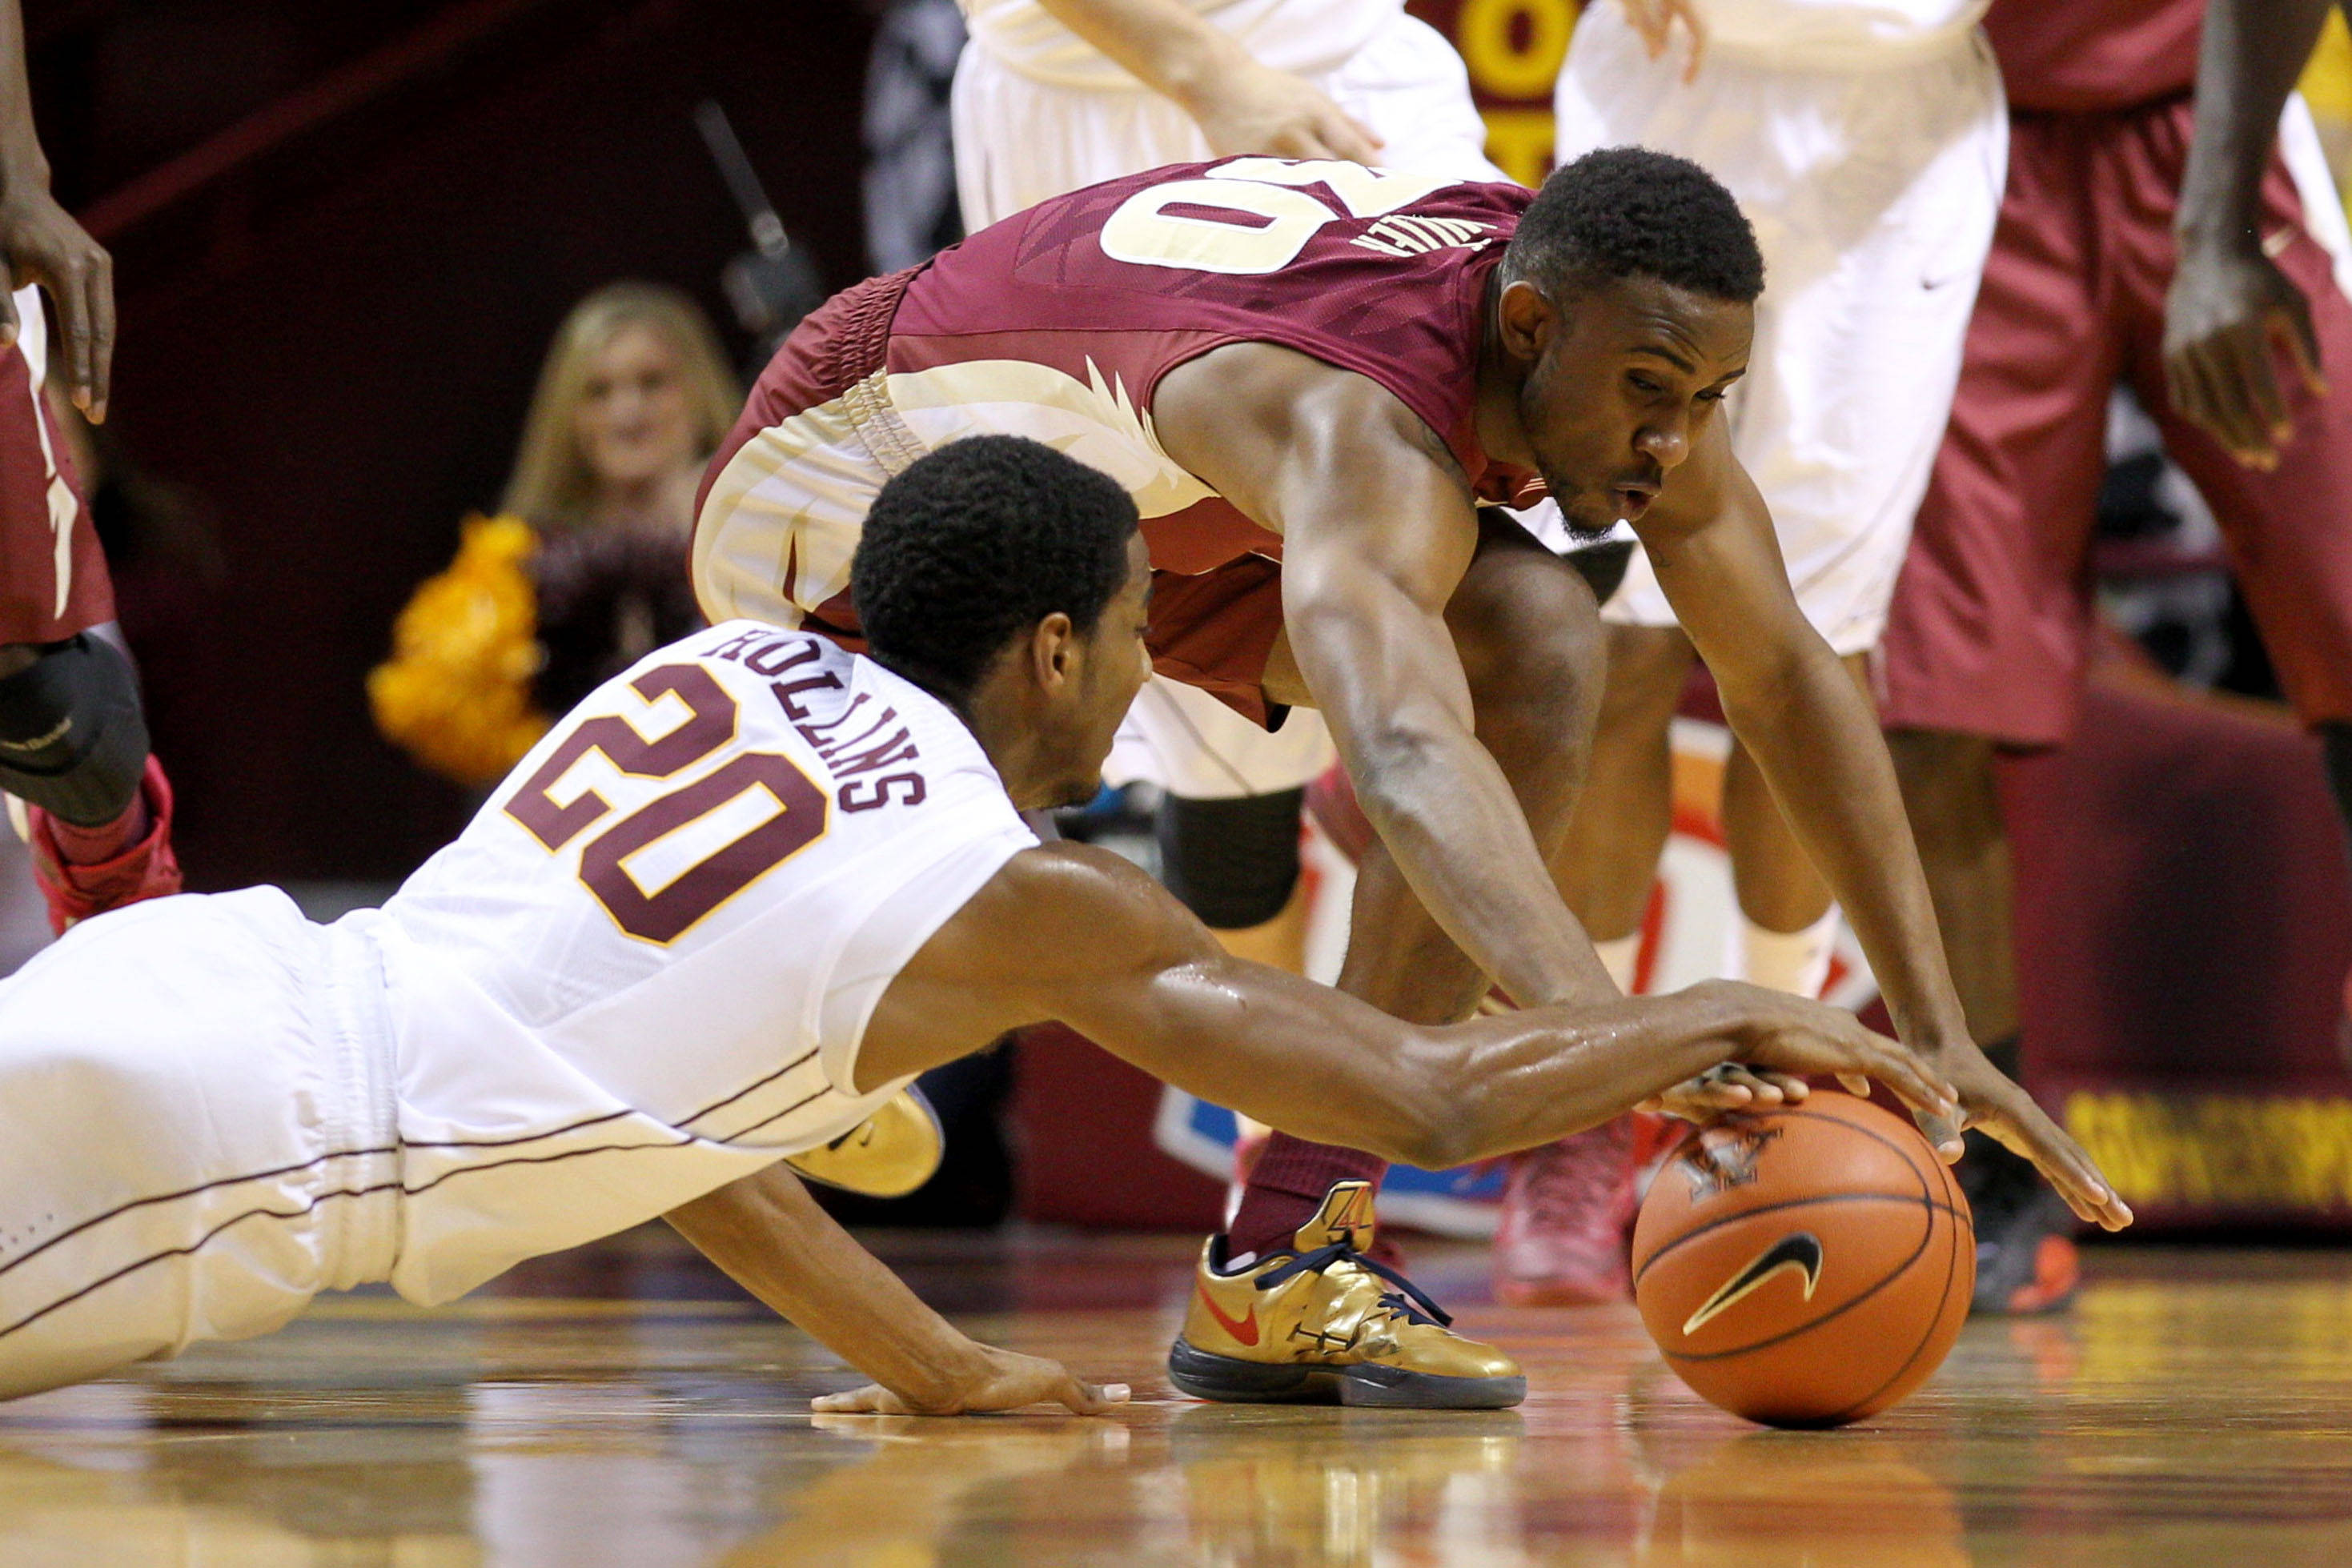 Dec 3, 2013; Minneapolis, MN, USA; Florida State Seminoles guard Ian Miller (30) and Minnesota Golden Gophers guard Austin Hollins (20) dive for the ball during the first half at Williams Arena. Mandatory Credit: Brace Hemmelgarn-USA TODAY Sports